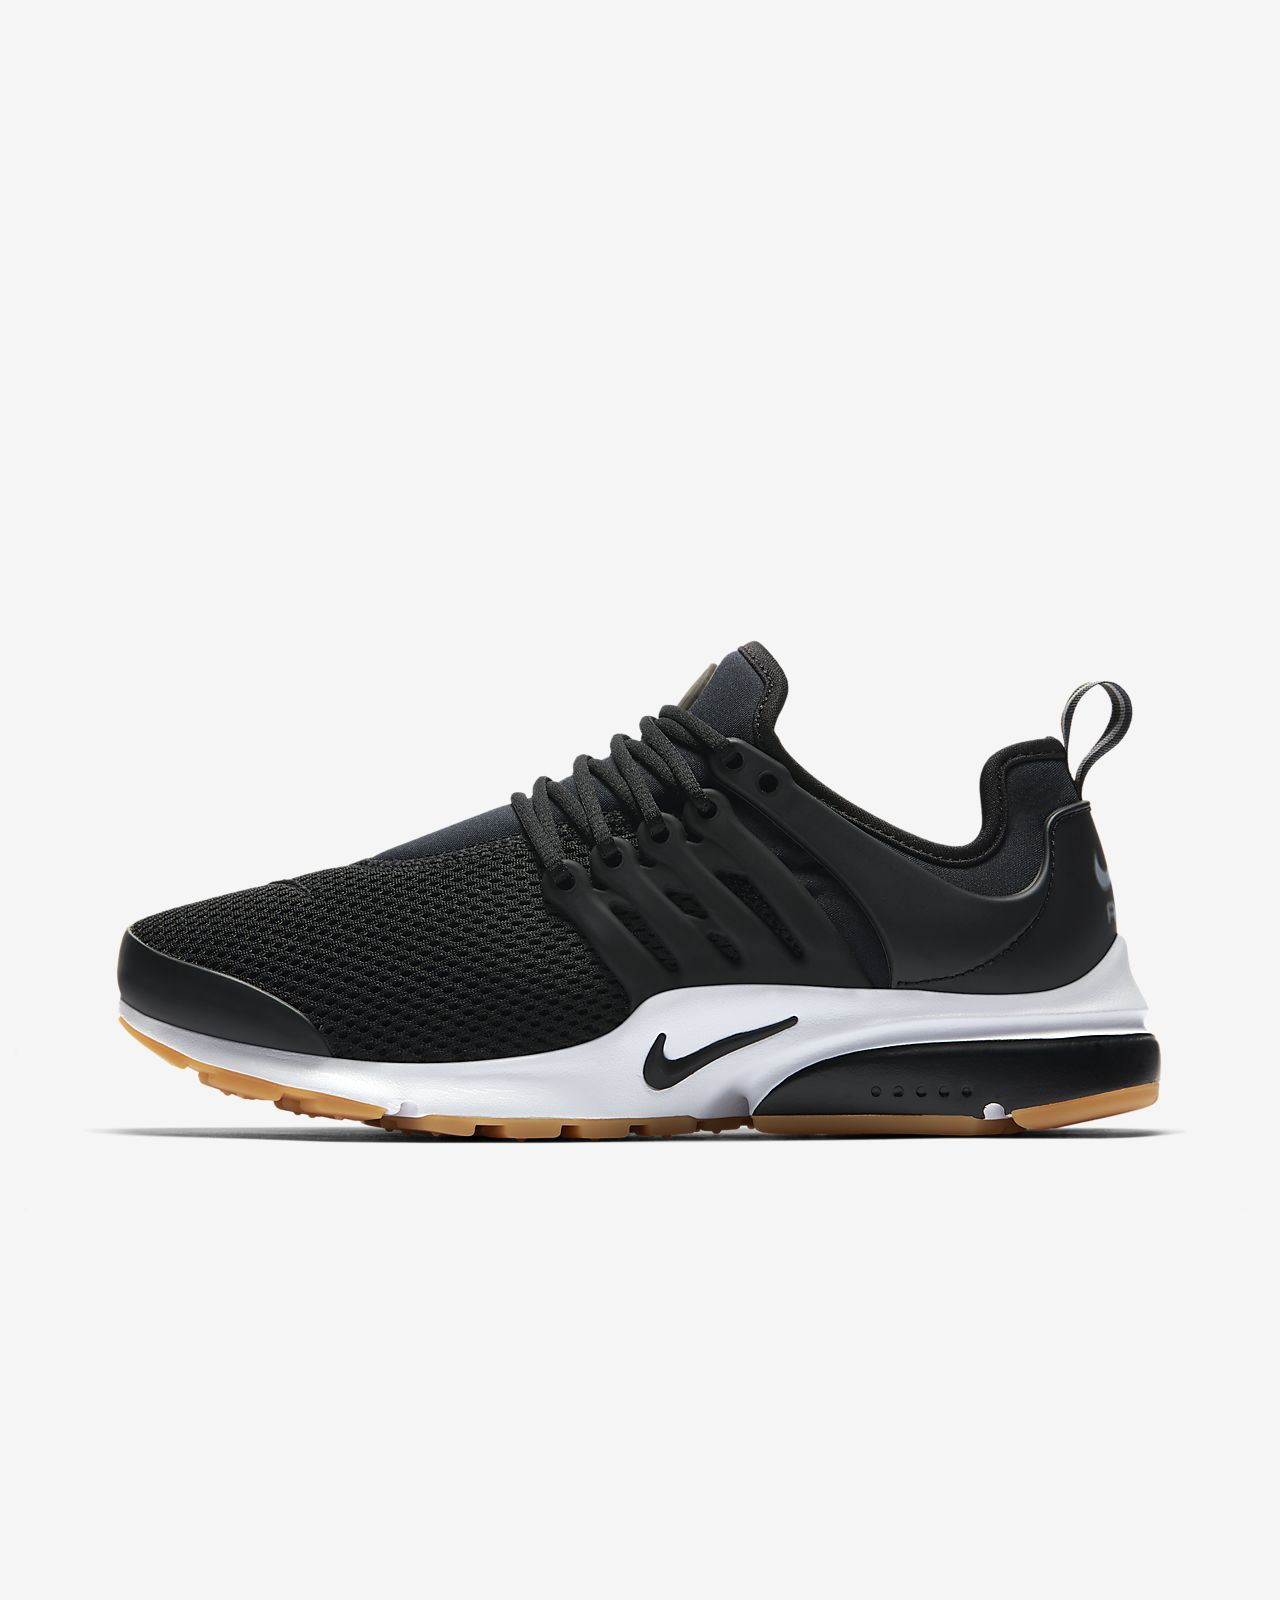 watch 2a2ed dc8c4 ... Nike Air Presto Women s Shoe